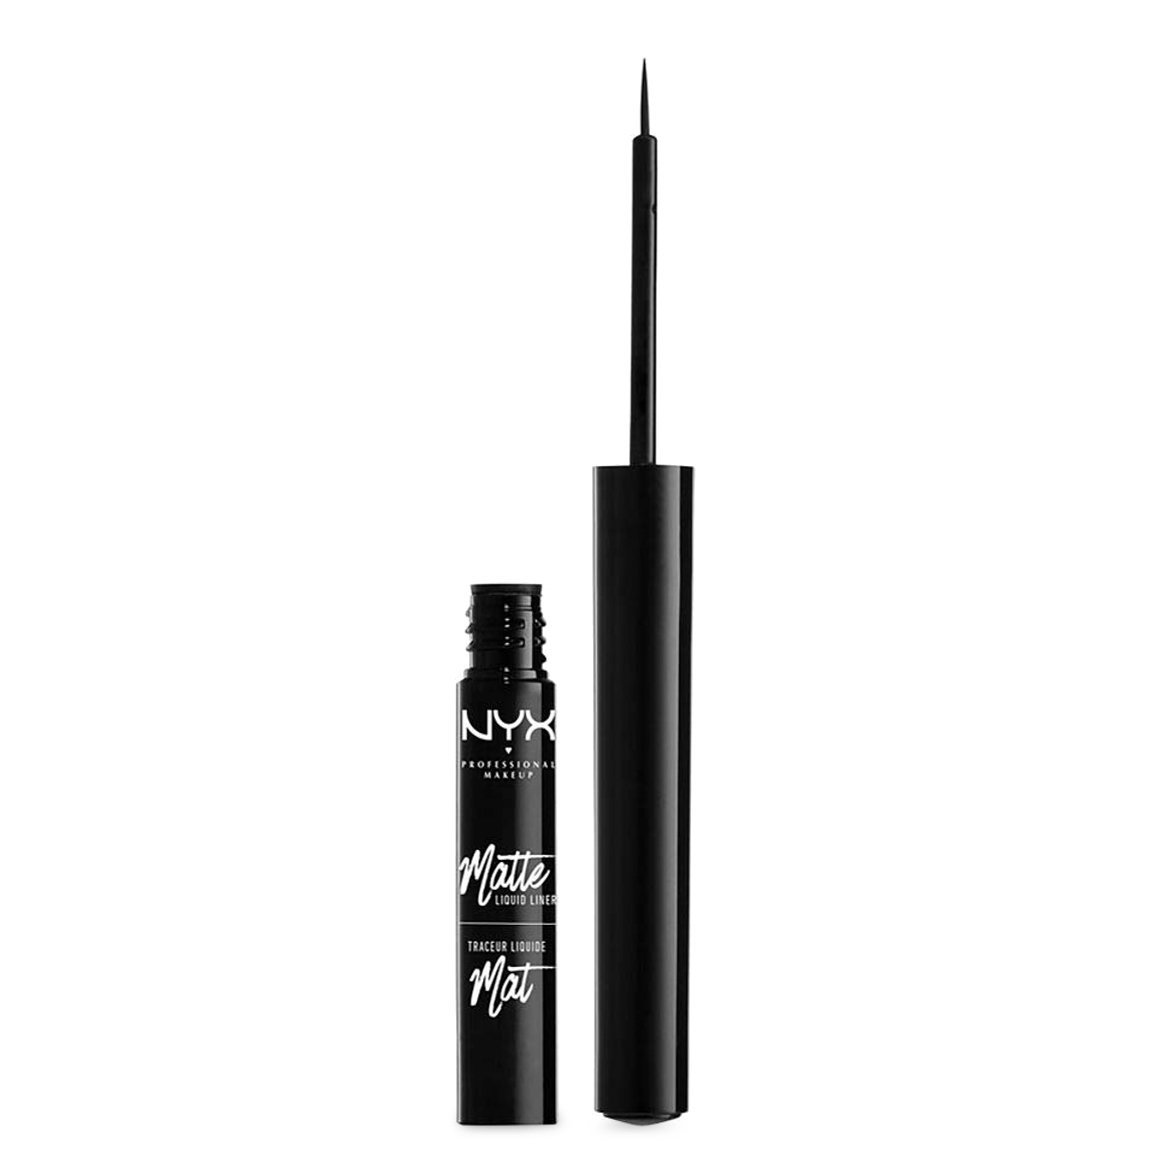 NYX Professional Makeup Matte Liquid Liner alternative view 1 - product swatch.